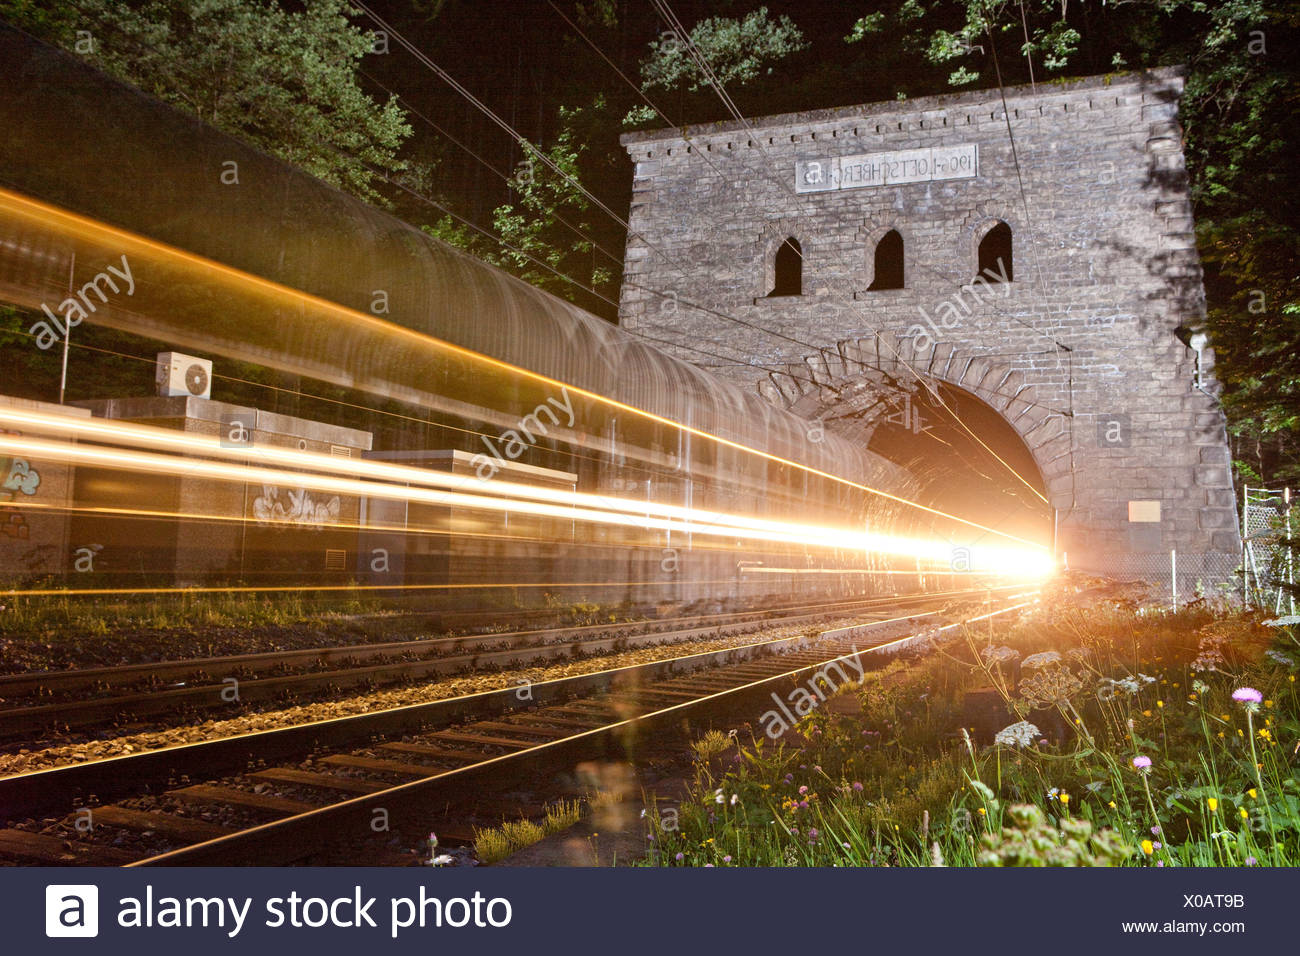 North main entrance, tunnel, Kandersteg, road, railway, train, railroad, Lötschberg, BLS, Switzerland, Europe, Bernese Oberland, - Stock Image